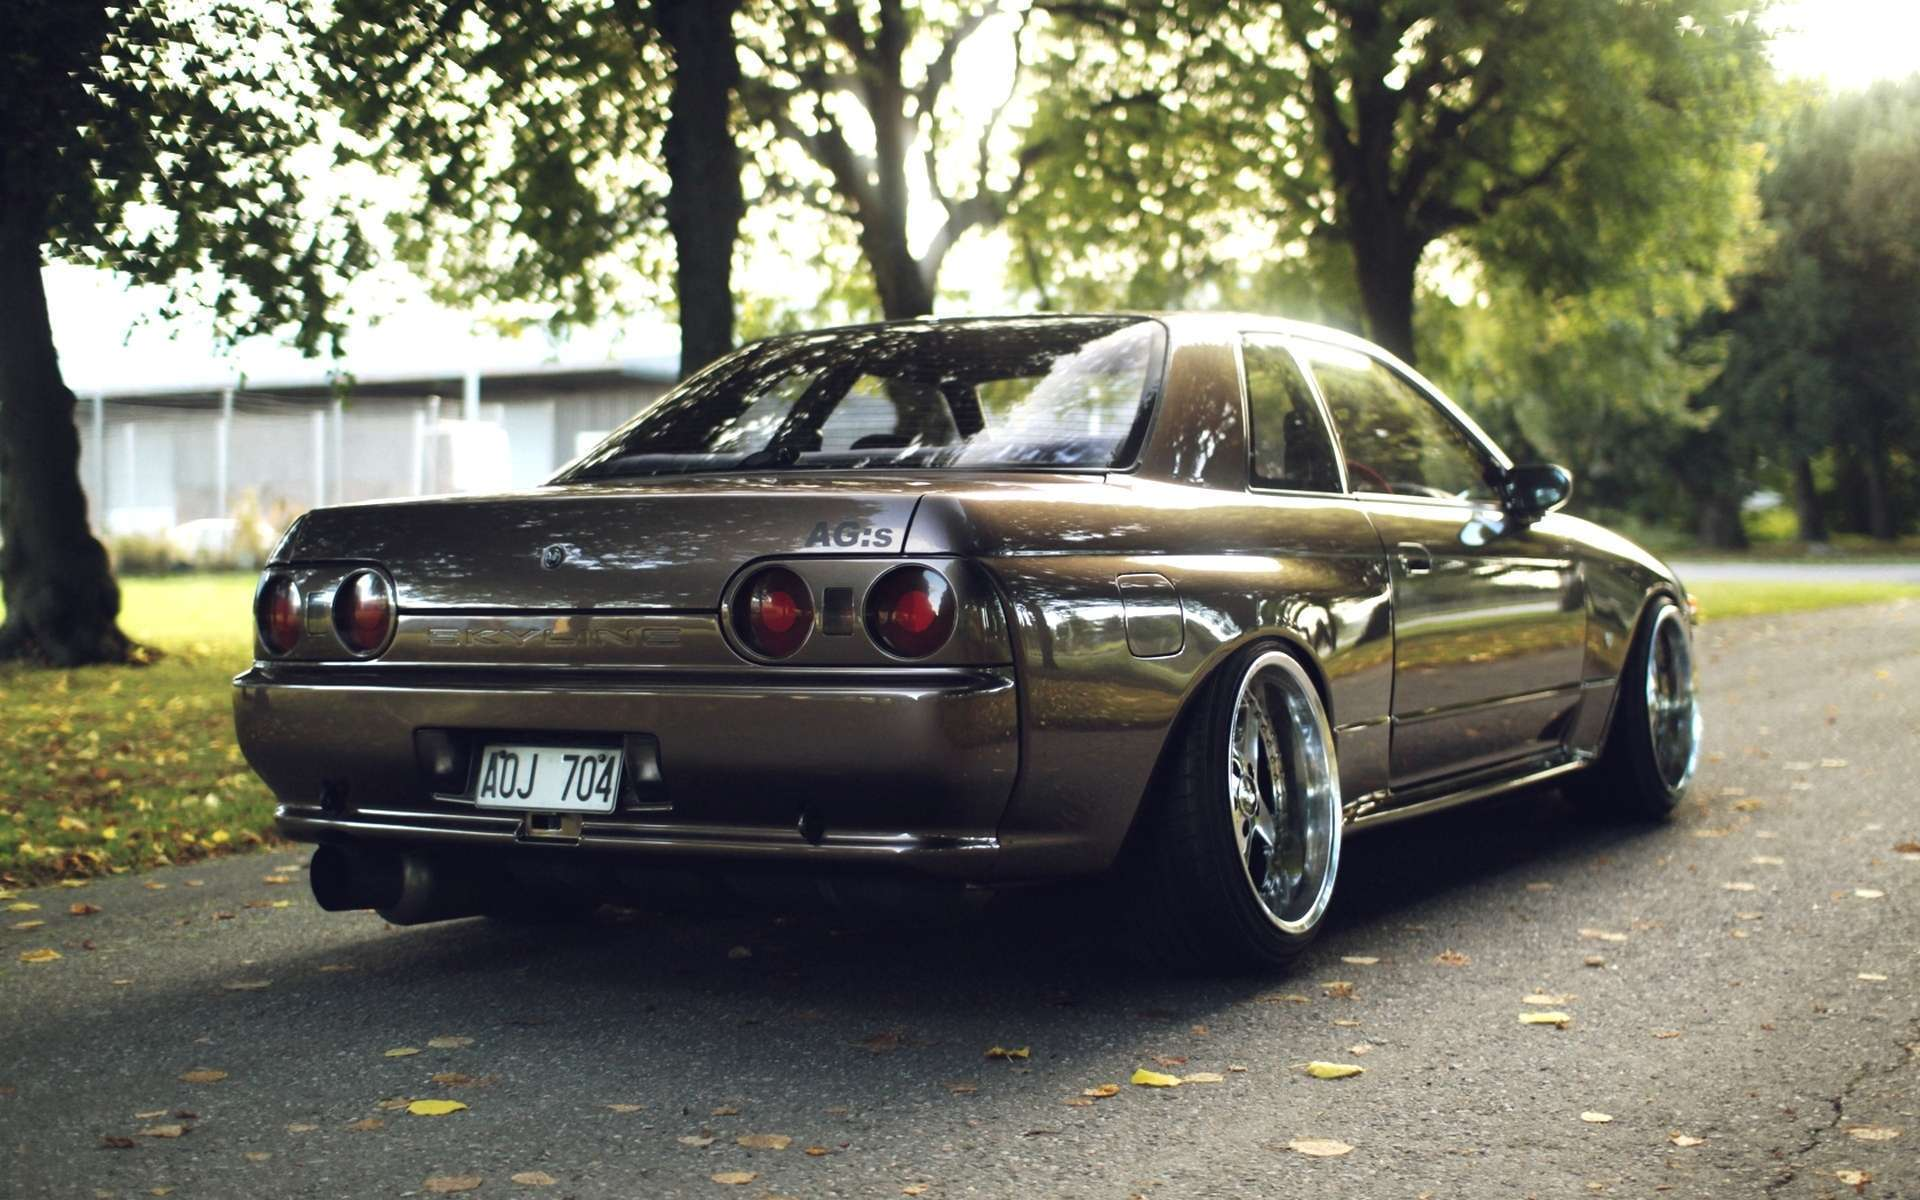 Car Nissan Skyline R32 Hd Wallpapers Hd Car Wallpapers